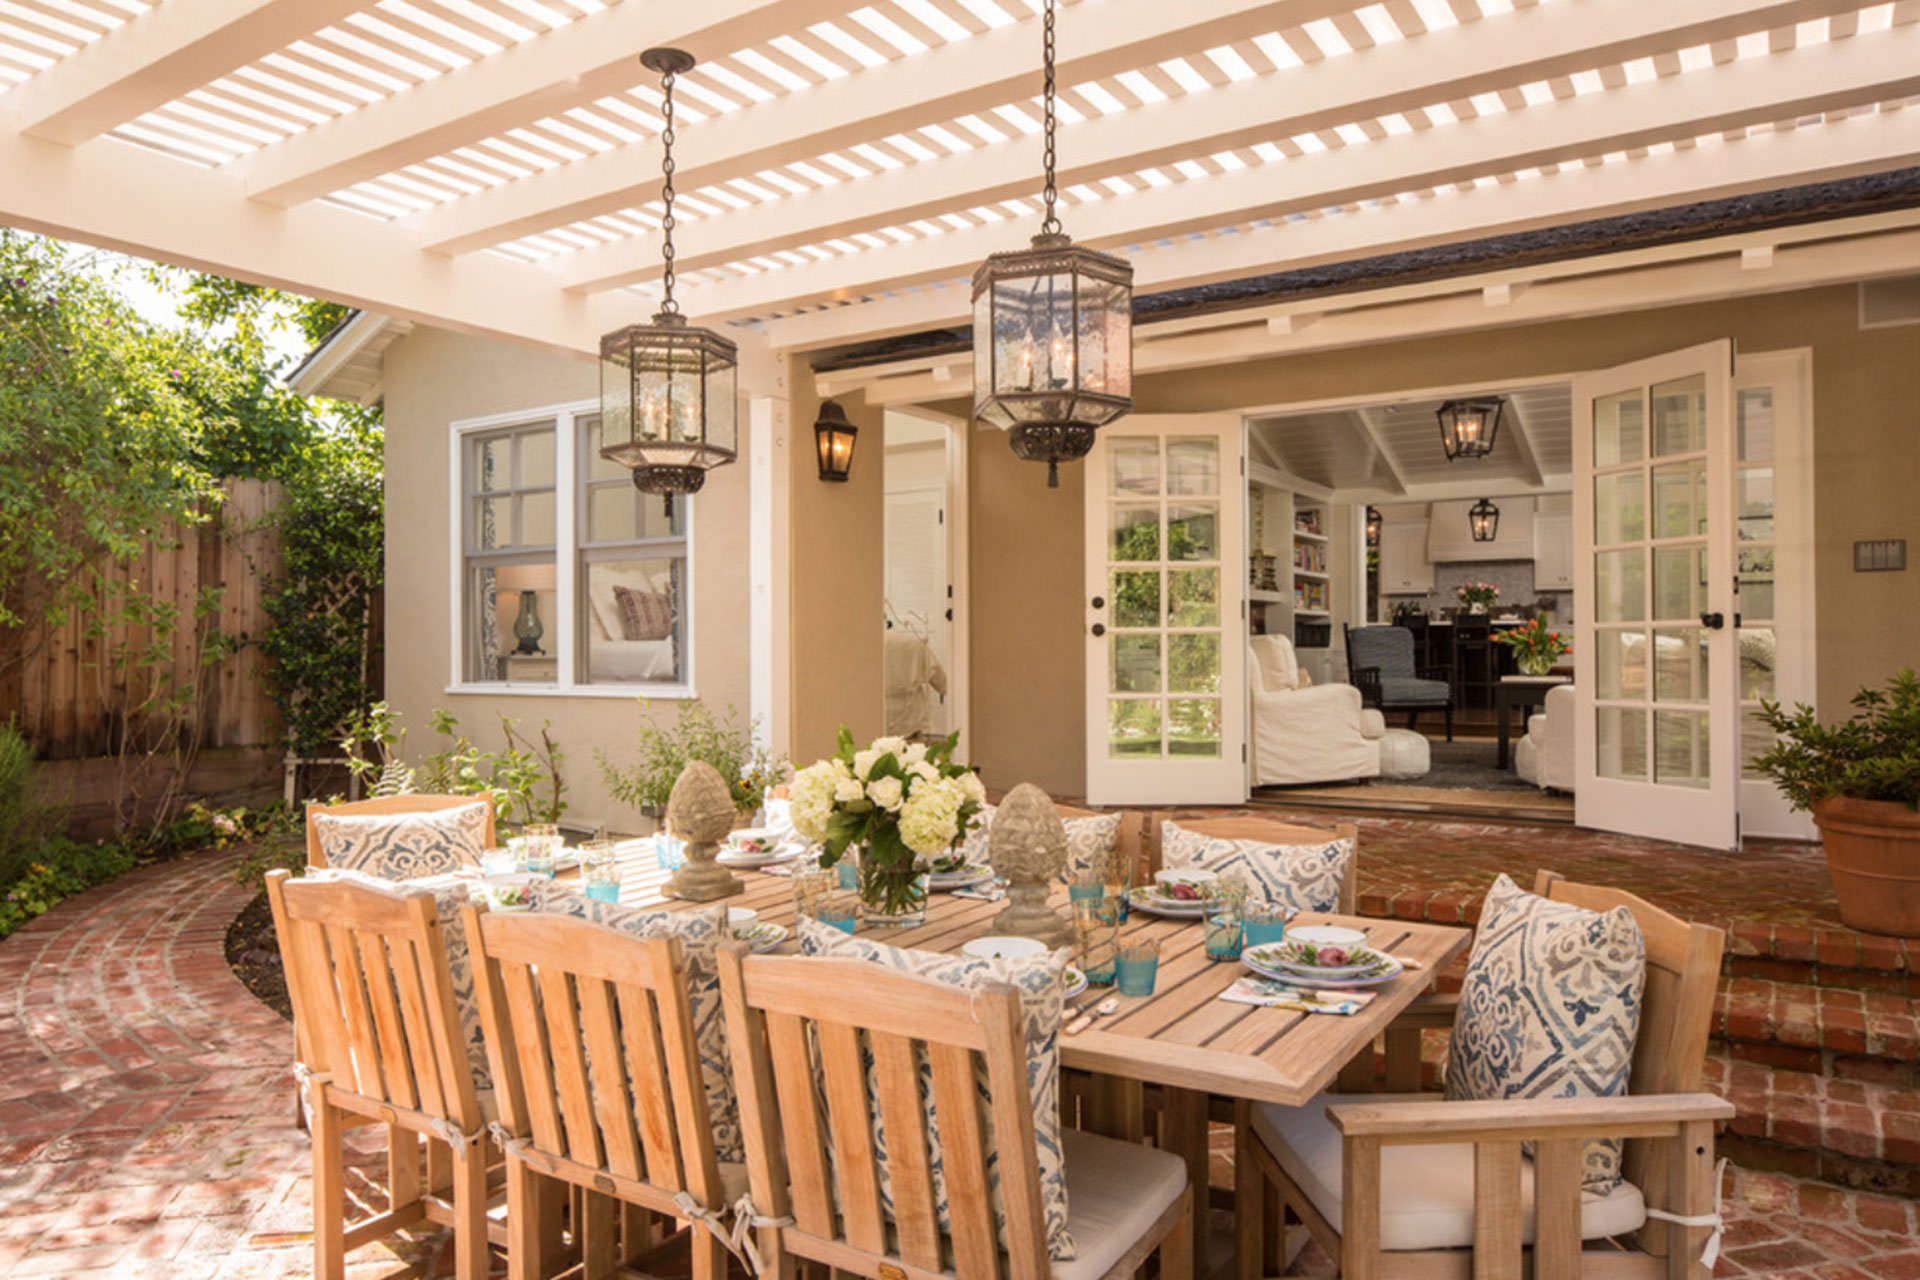 Five Pergola Lighting Ideas To Illuminate Your Outdoor Space